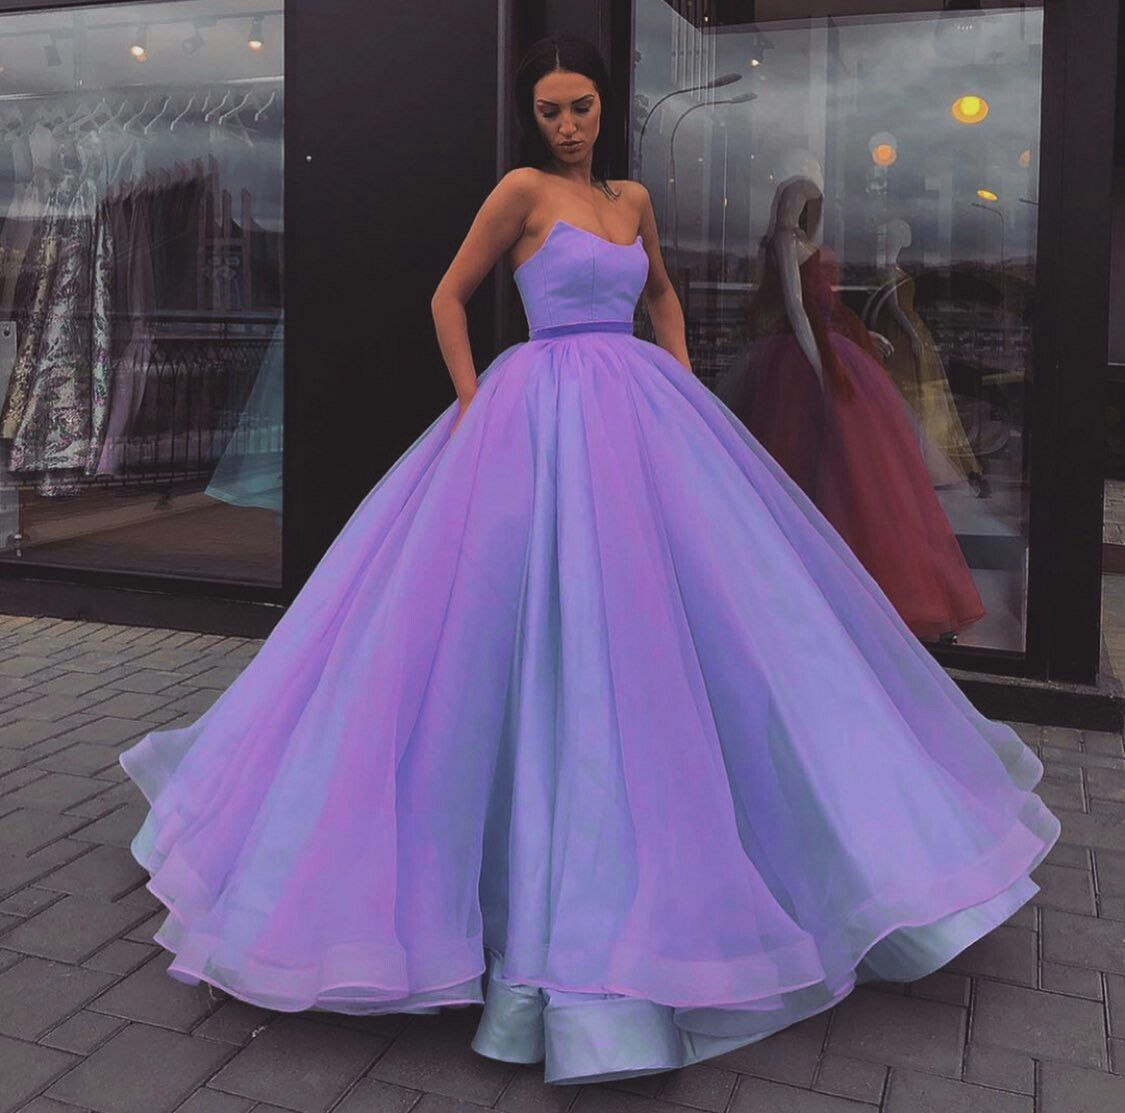 Pin by vallee chavez on ball gowns in pinterest dresses